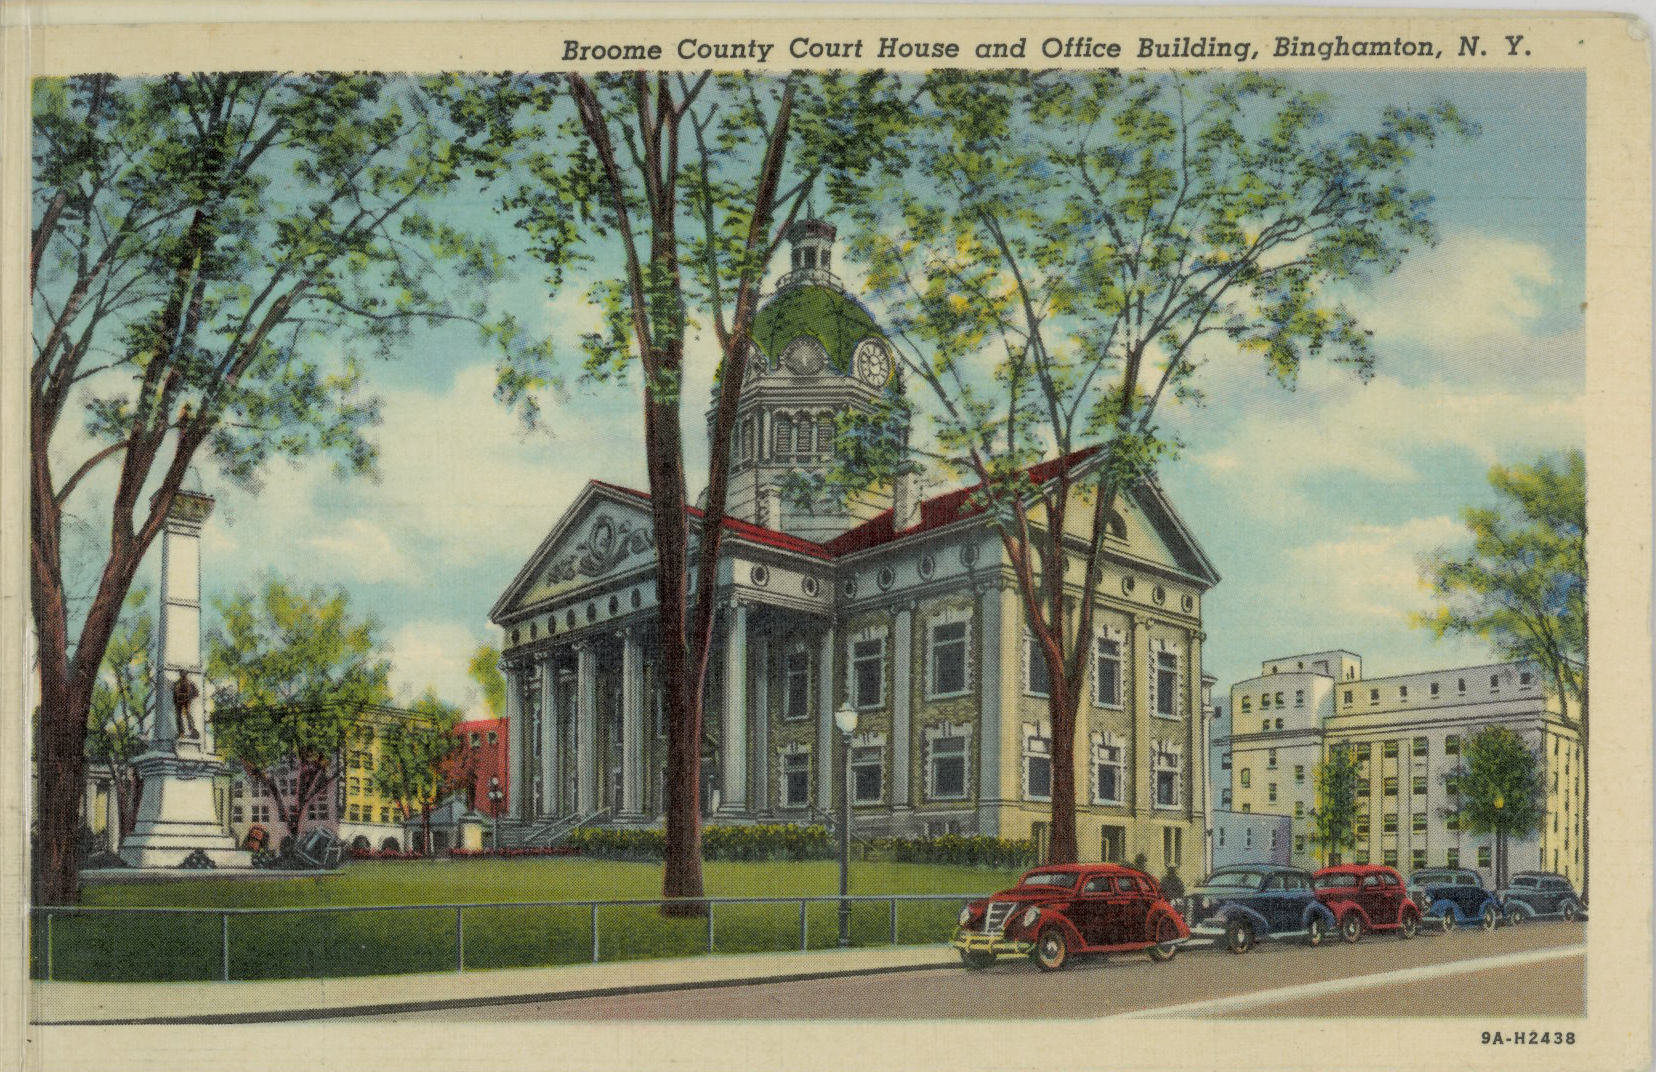 Historic Postcards of New York County Courthouses